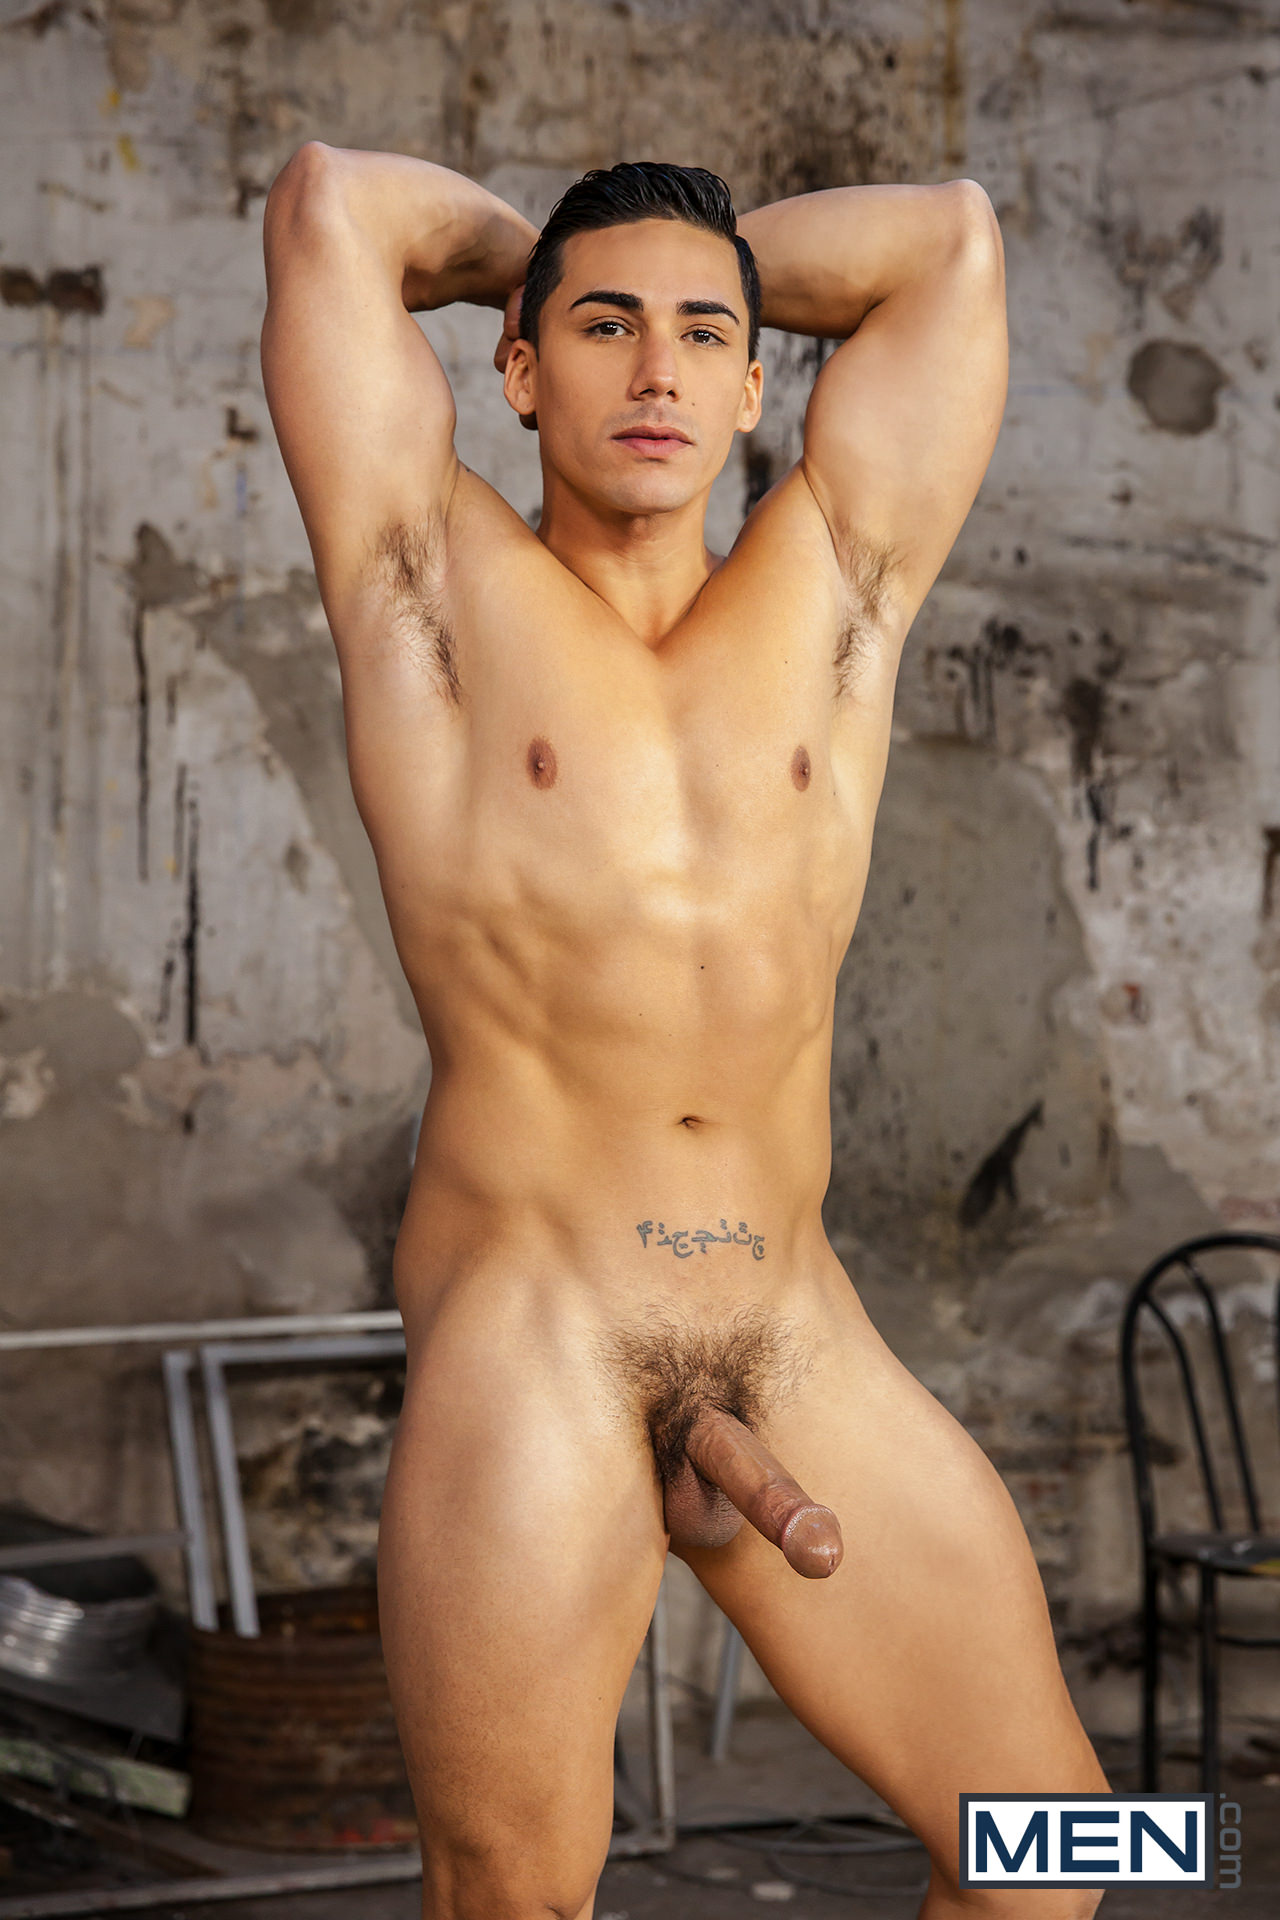 topher dimaggio escort gay new york